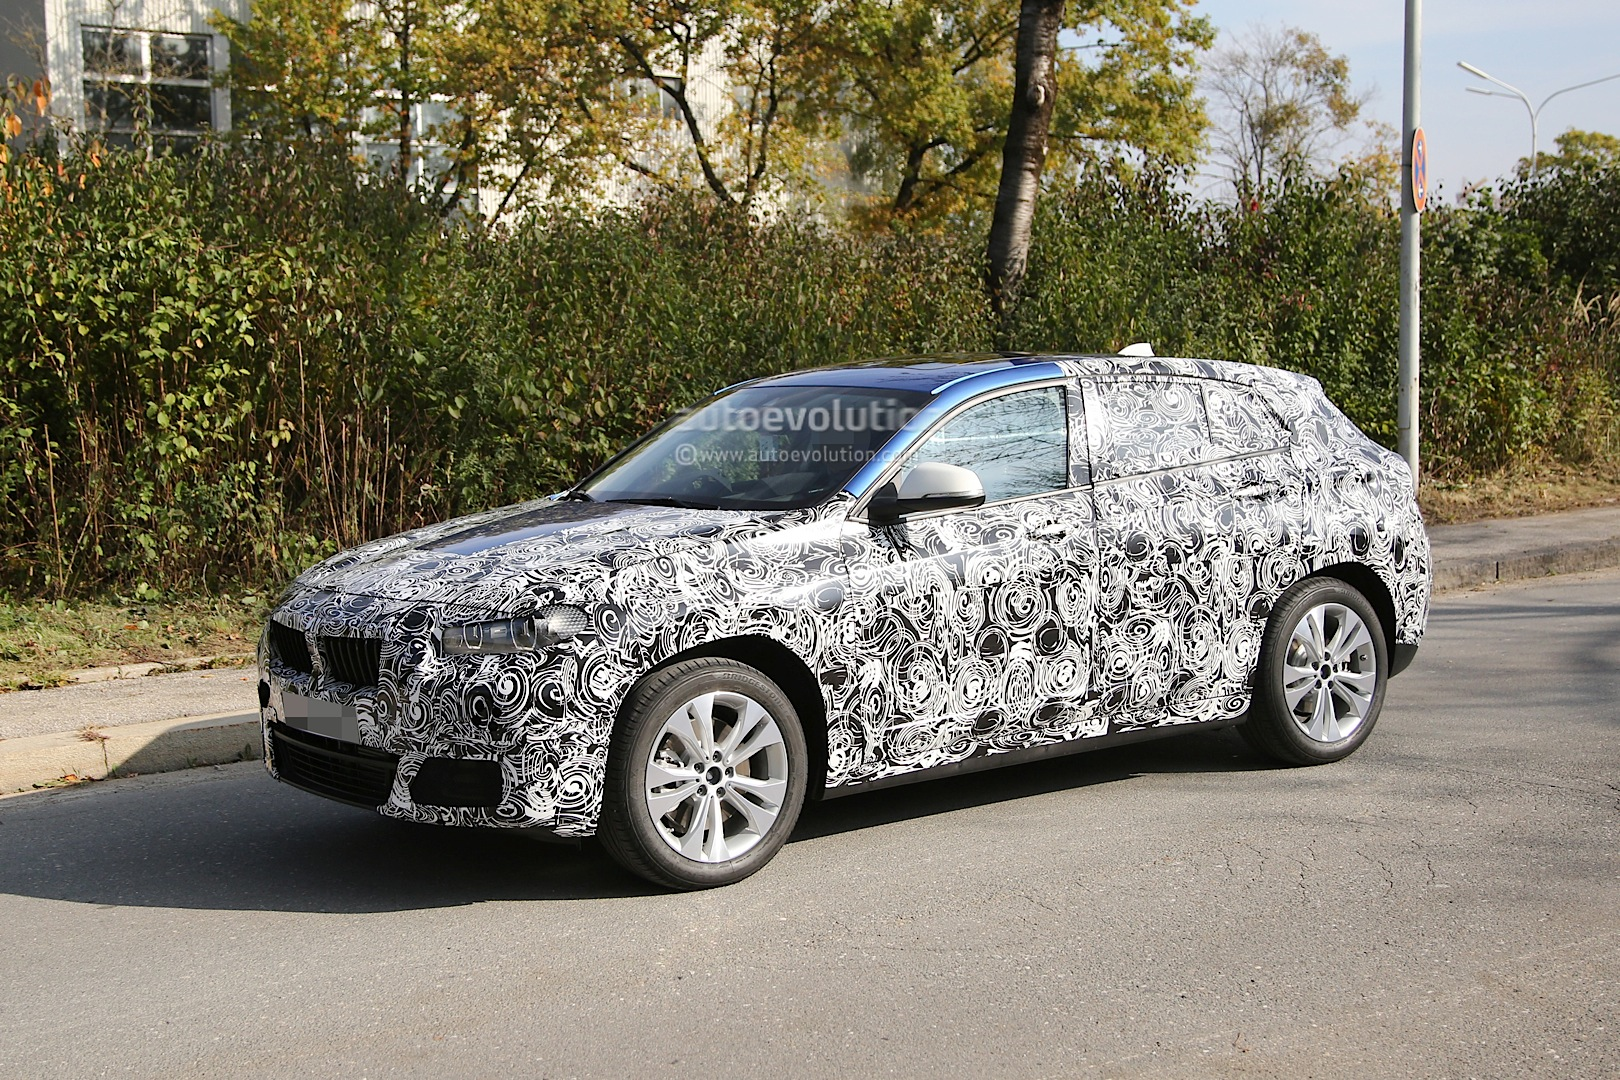 2017 bmw x2 first spy photos show production design of x1 based sport activity coupe autoevolution. Black Bedroom Furniture Sets. Home Design Ideas